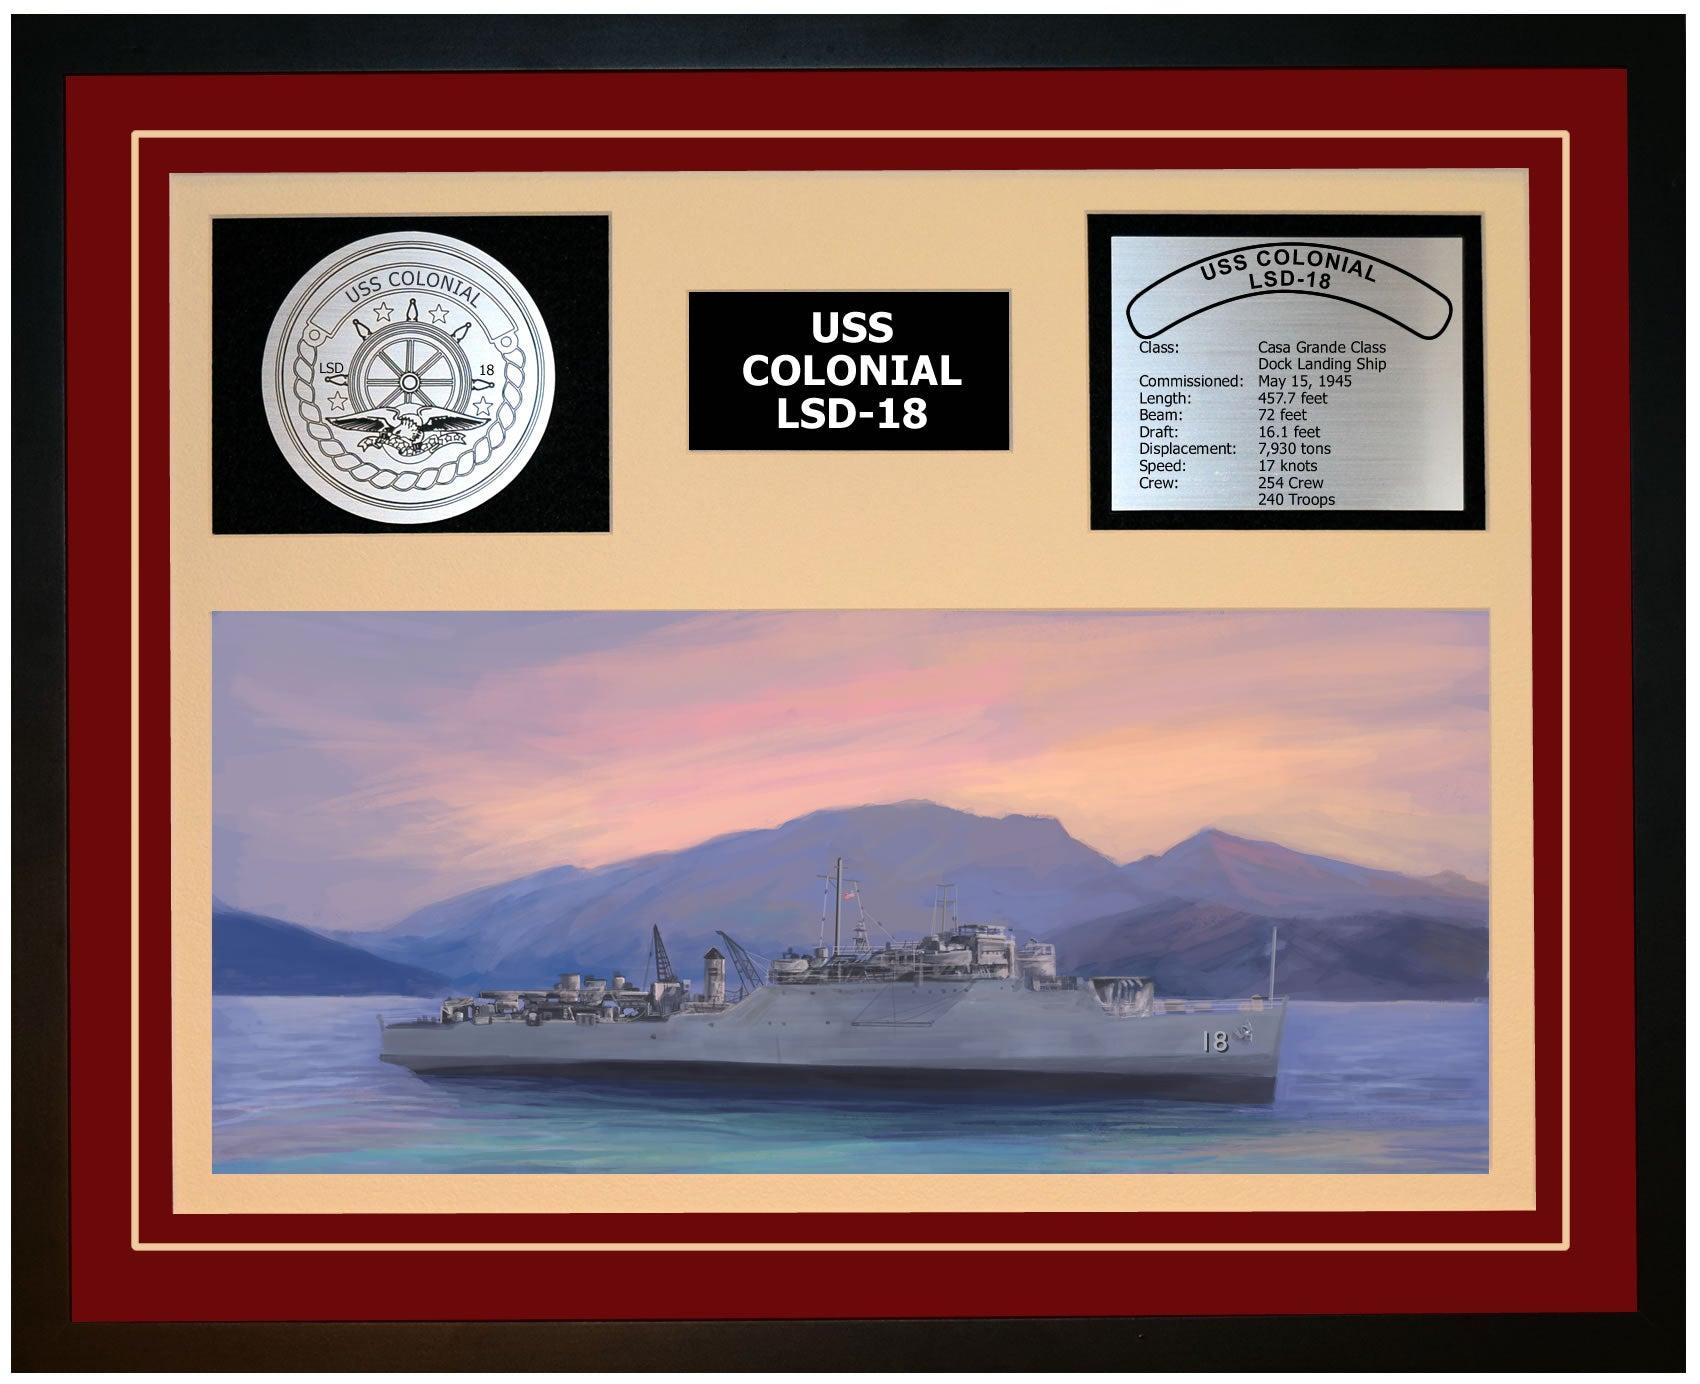 USS COLONIAL LSD-18 Framed Navy Ship Display Burgundy